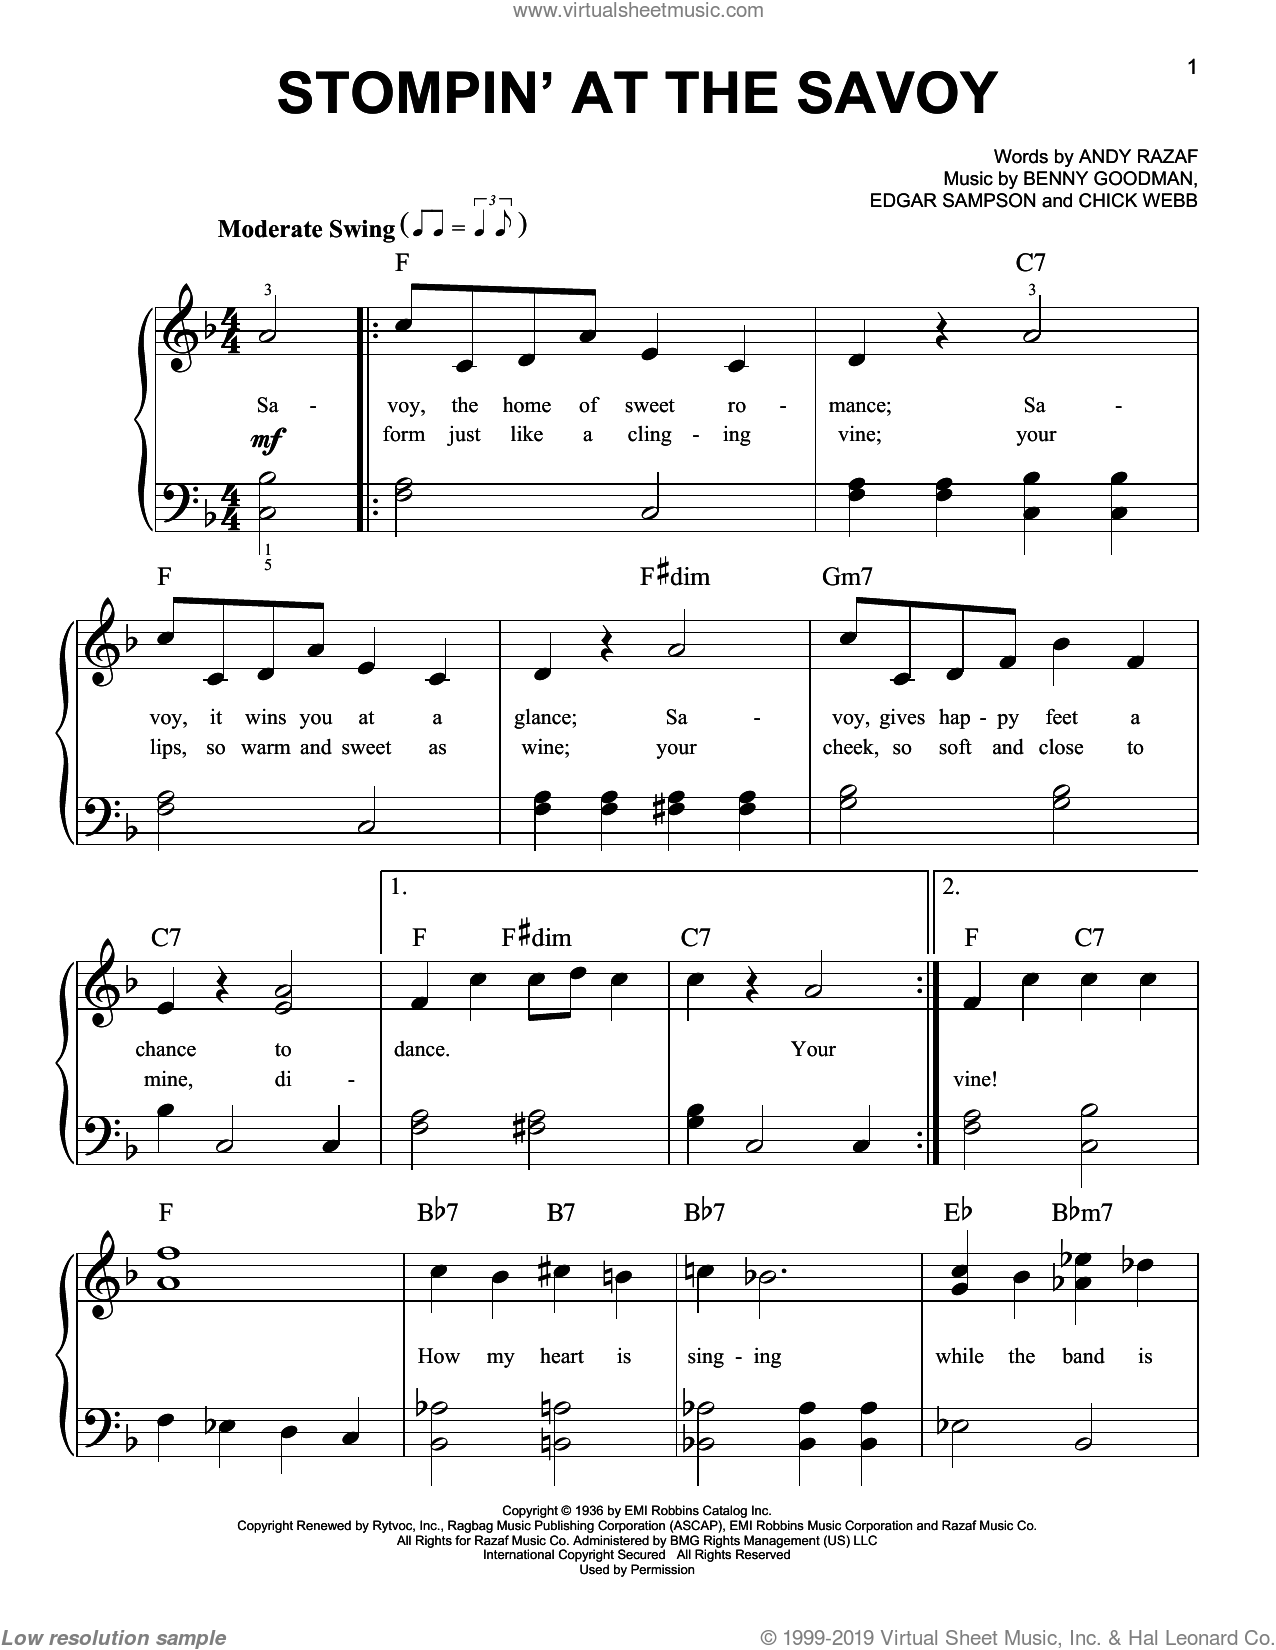 Stompin' At The Savoy sheet music for piano solo (chords) by Edgar Sampson